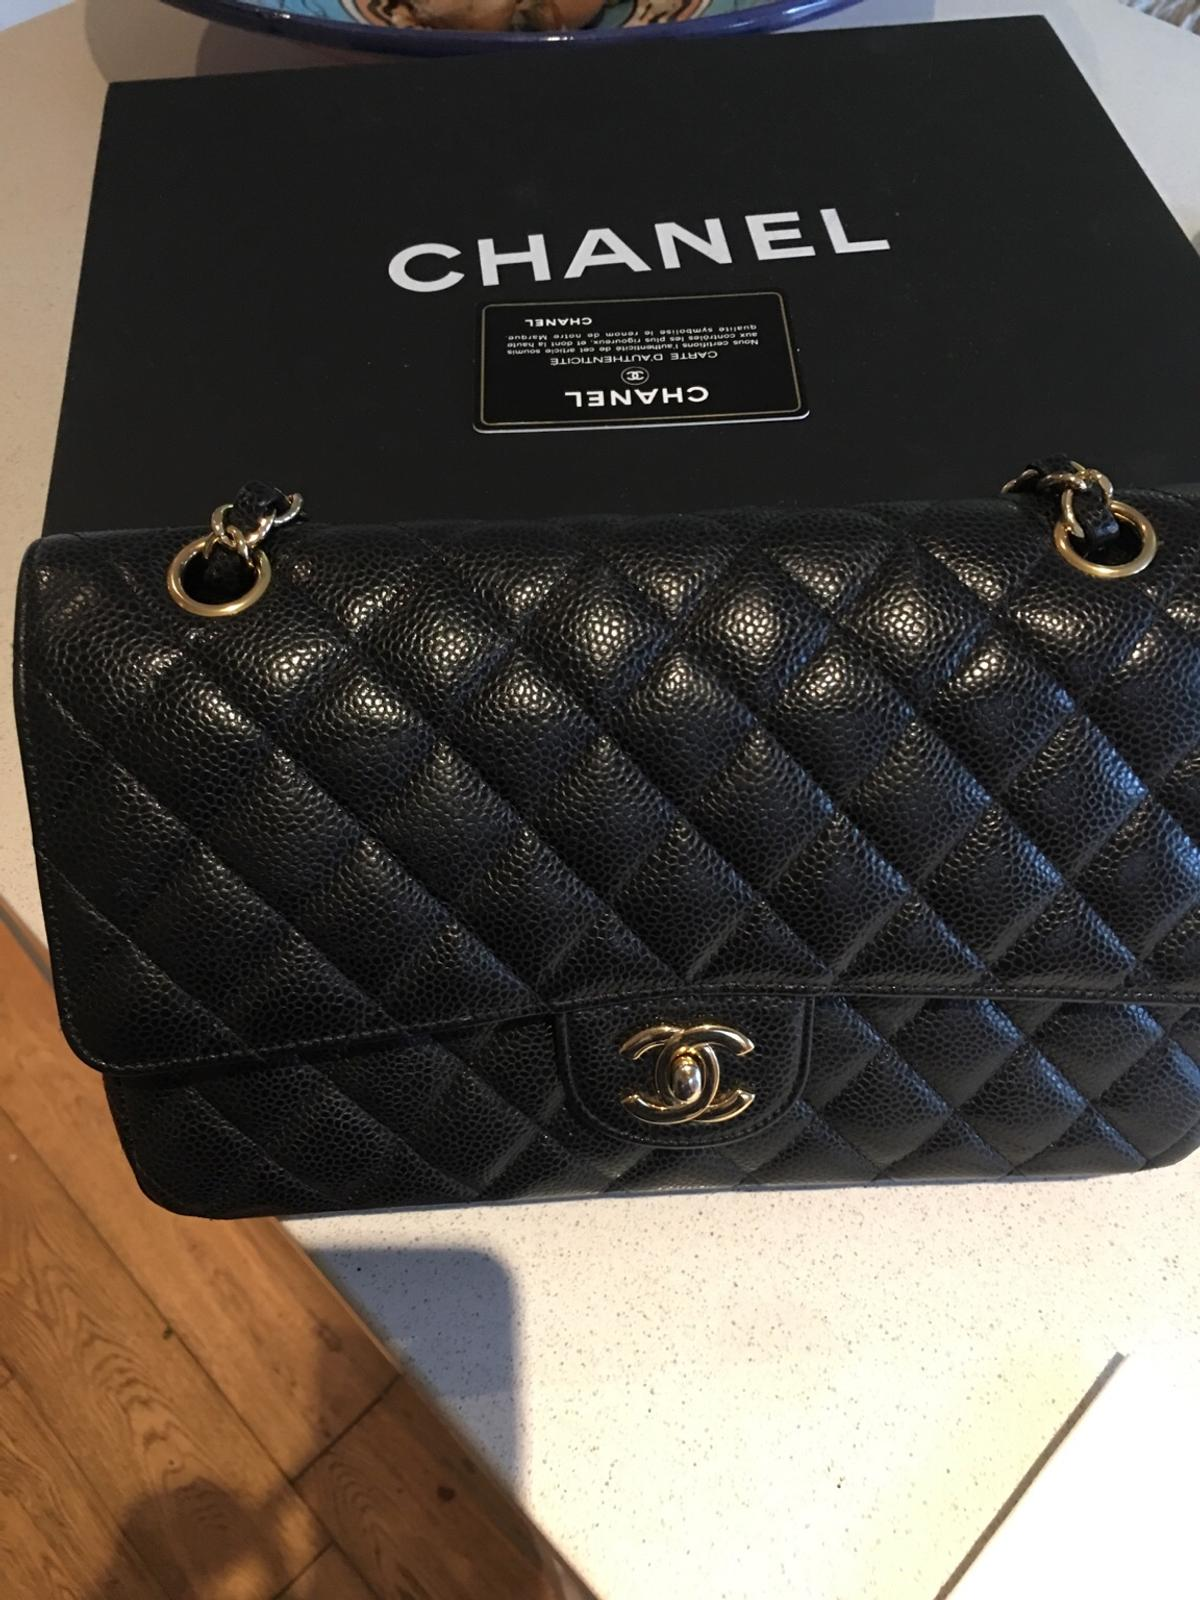 Authentic Classic Chanel Bag Worth 3990